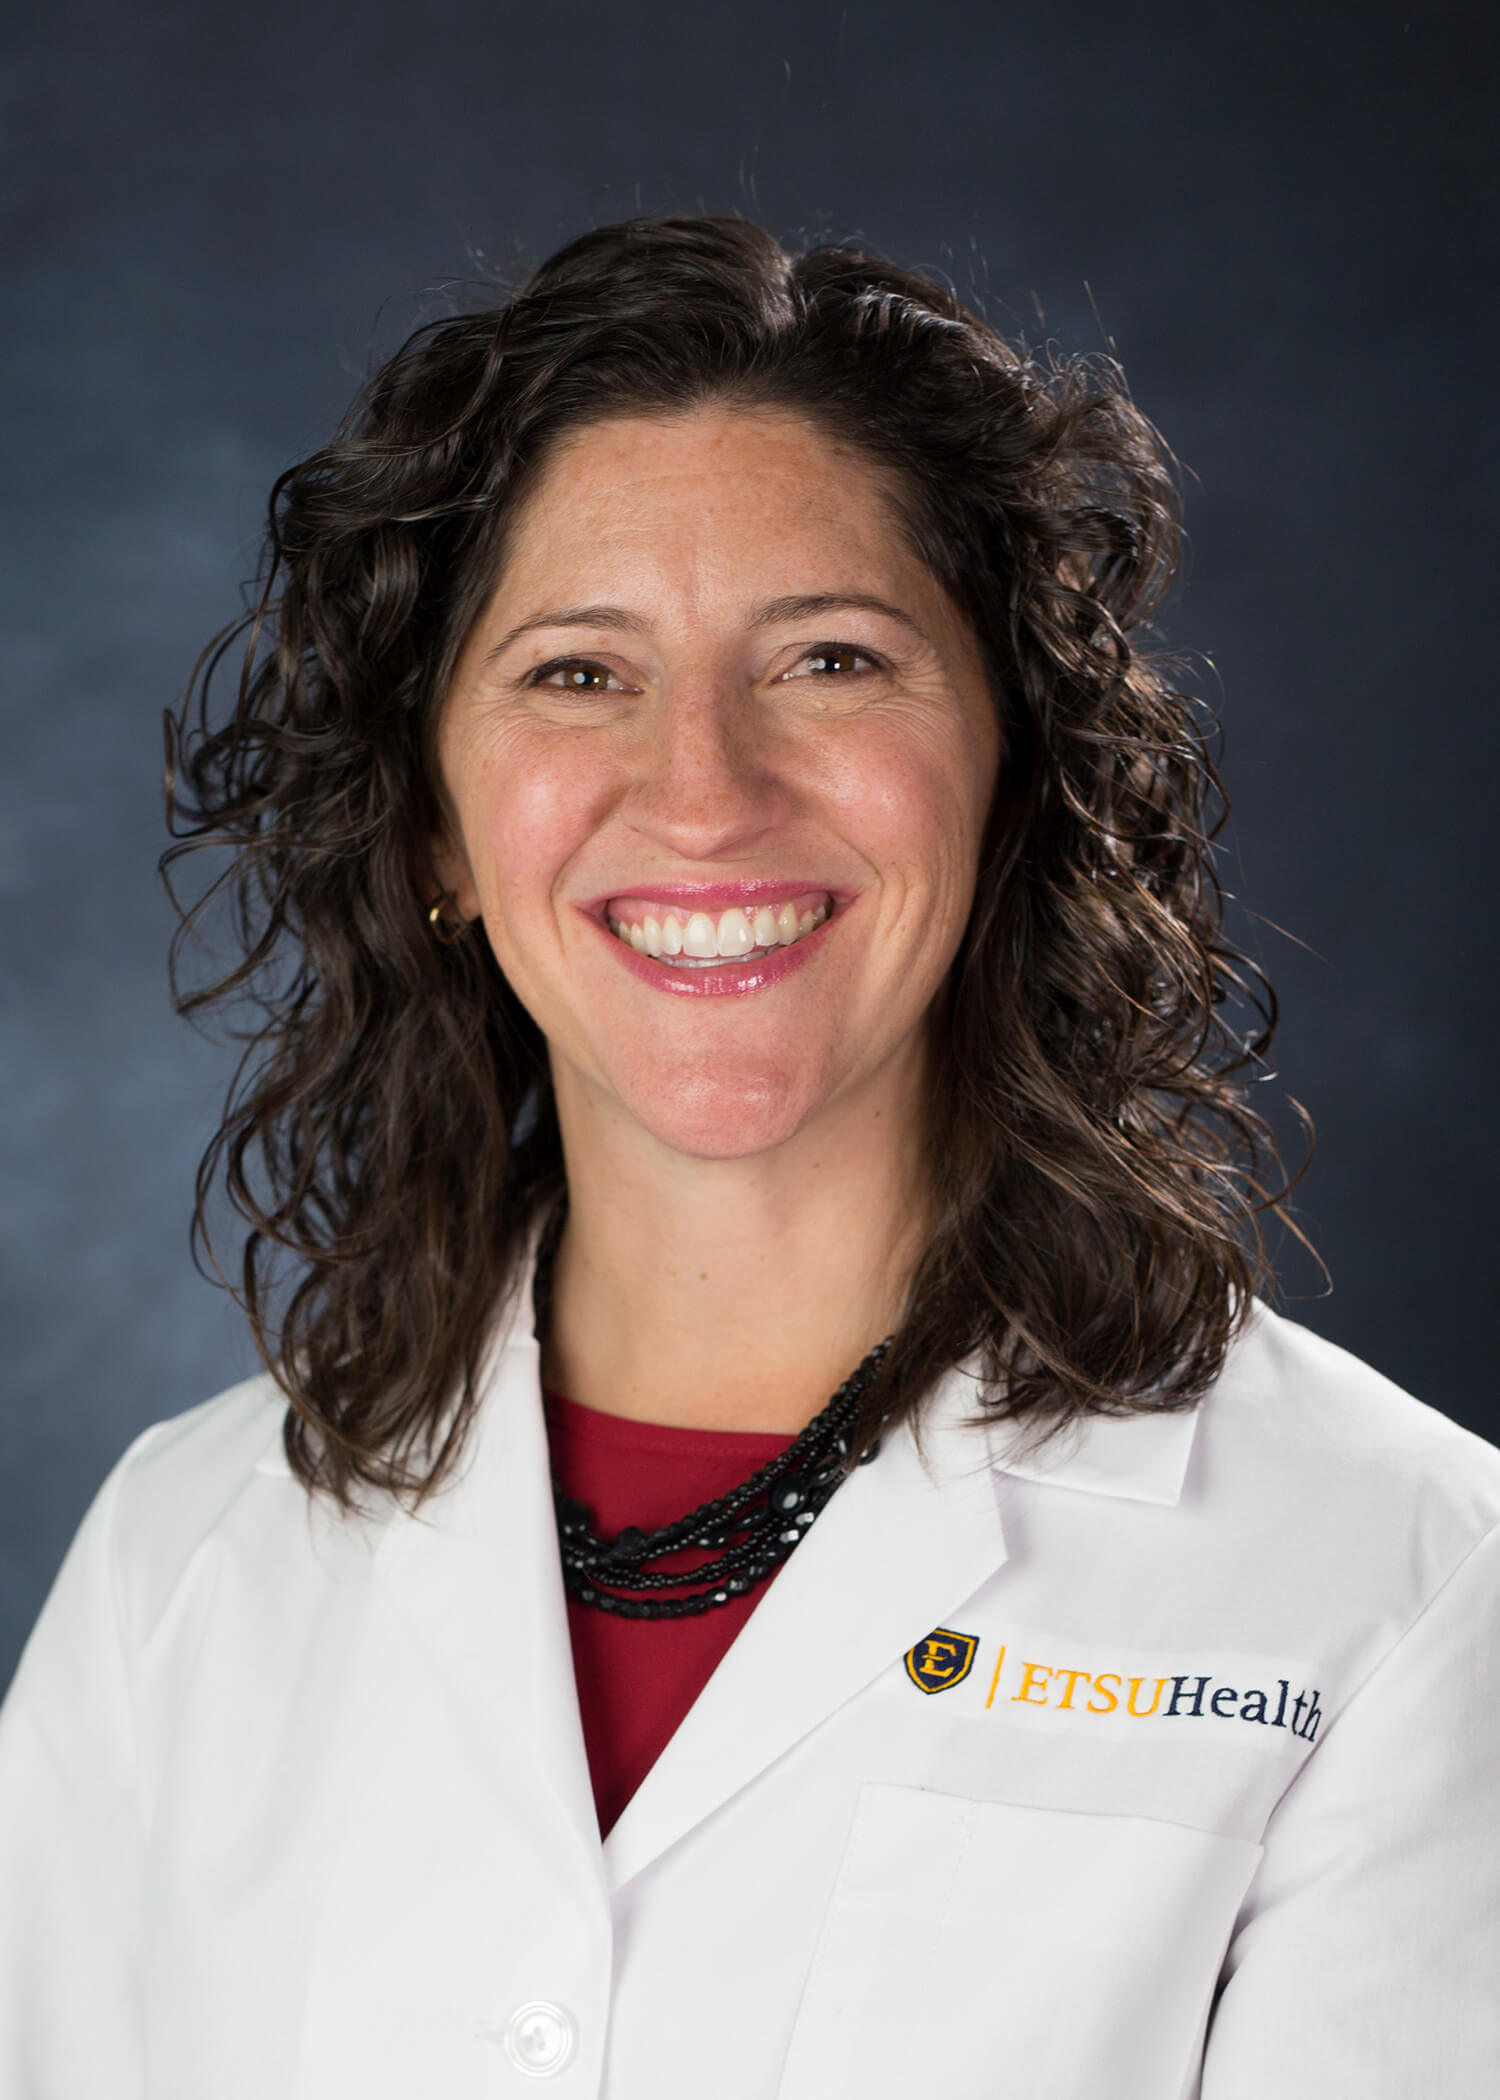 Photo of Leigh Johnson, M.D.